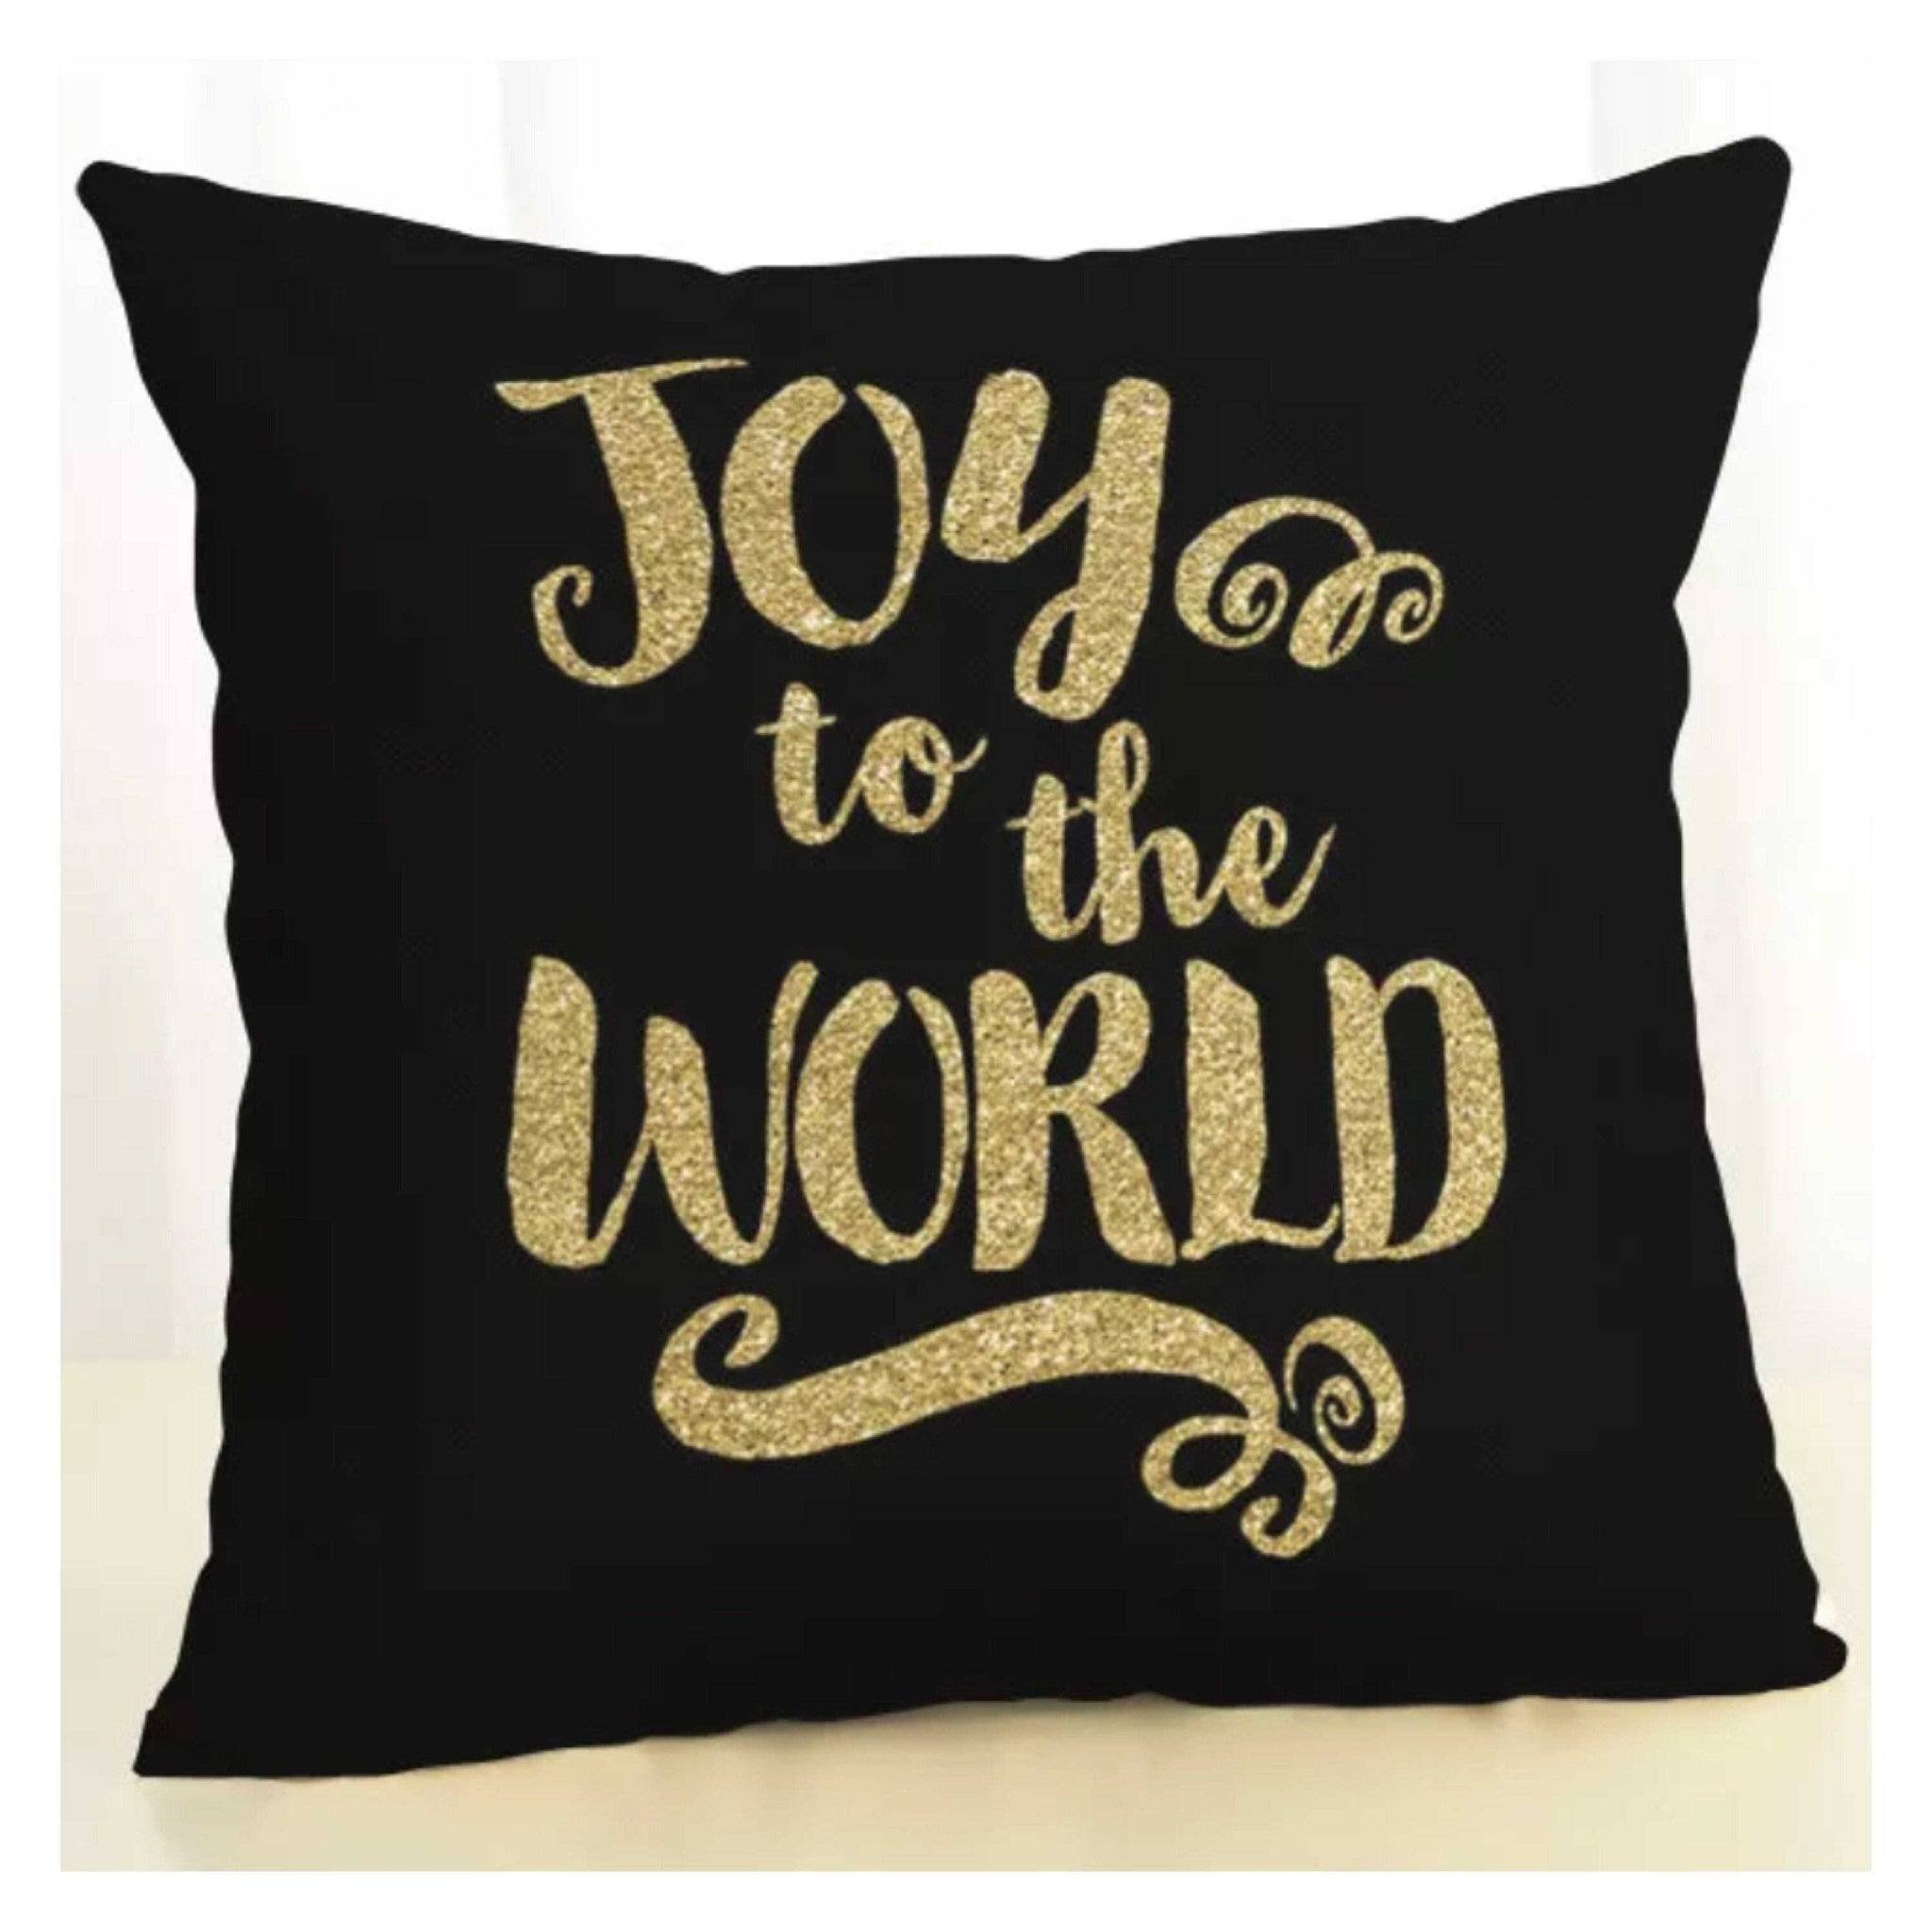 Cushion Pillow Joy To The World Christmas - The Renmy Store